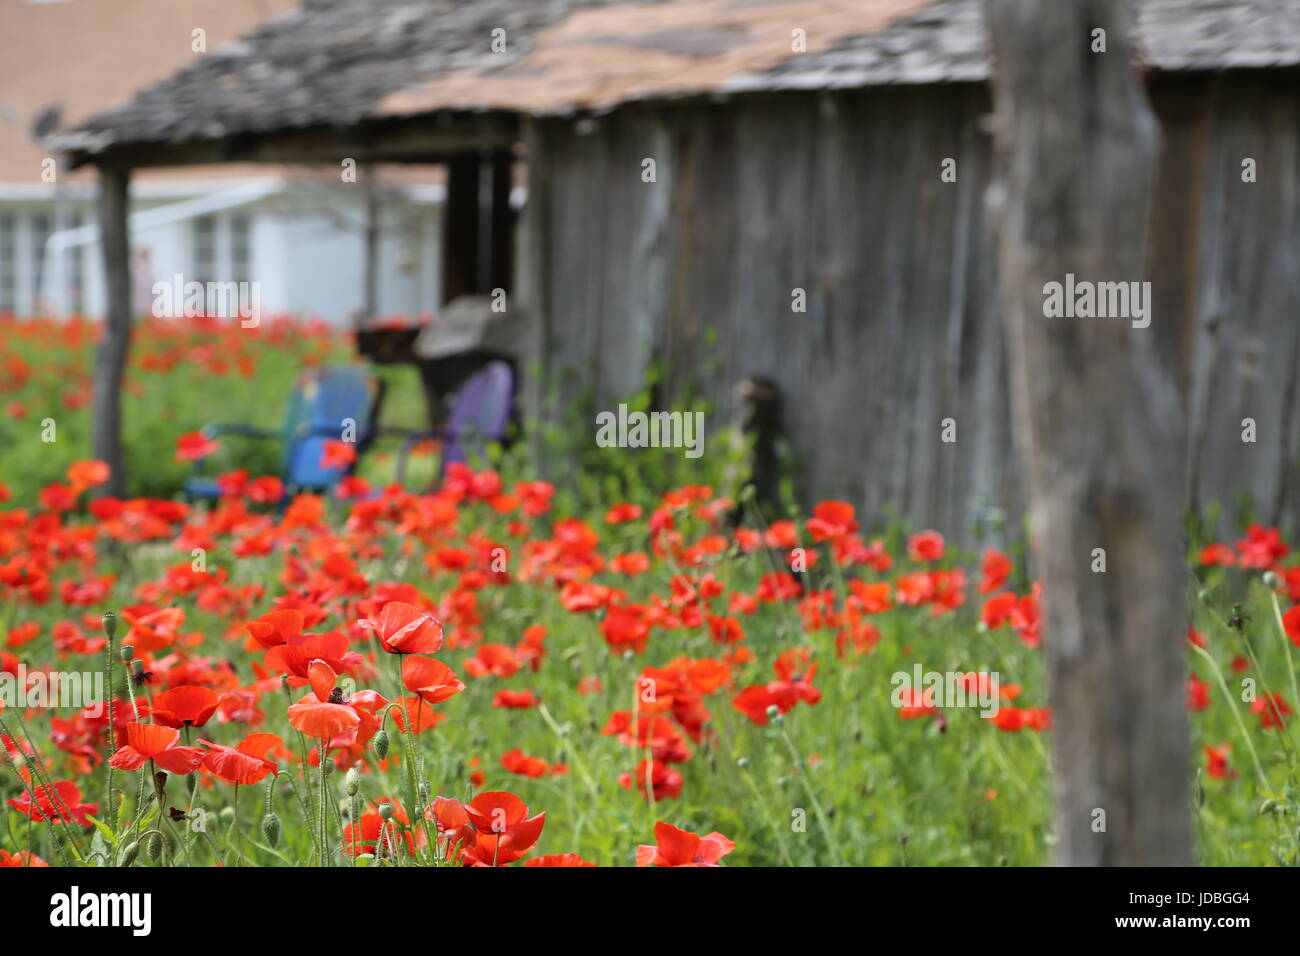 Red Poppies in the Front Yard - Stock Image